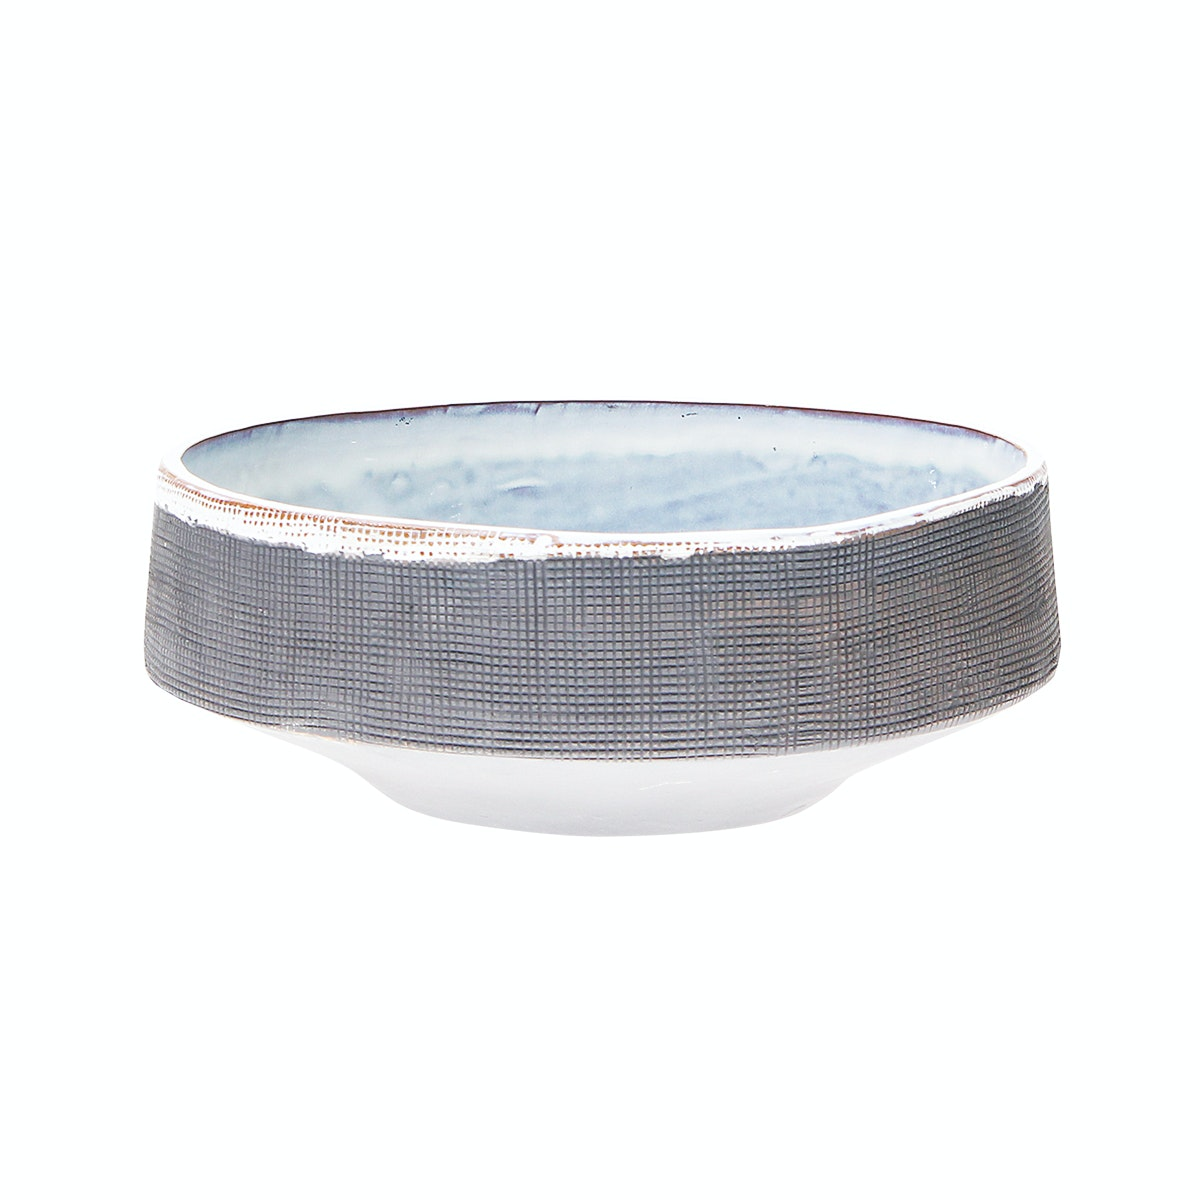 VIVERE DECO BOWL NIPON SCRATCH 28X9,5CM Grey